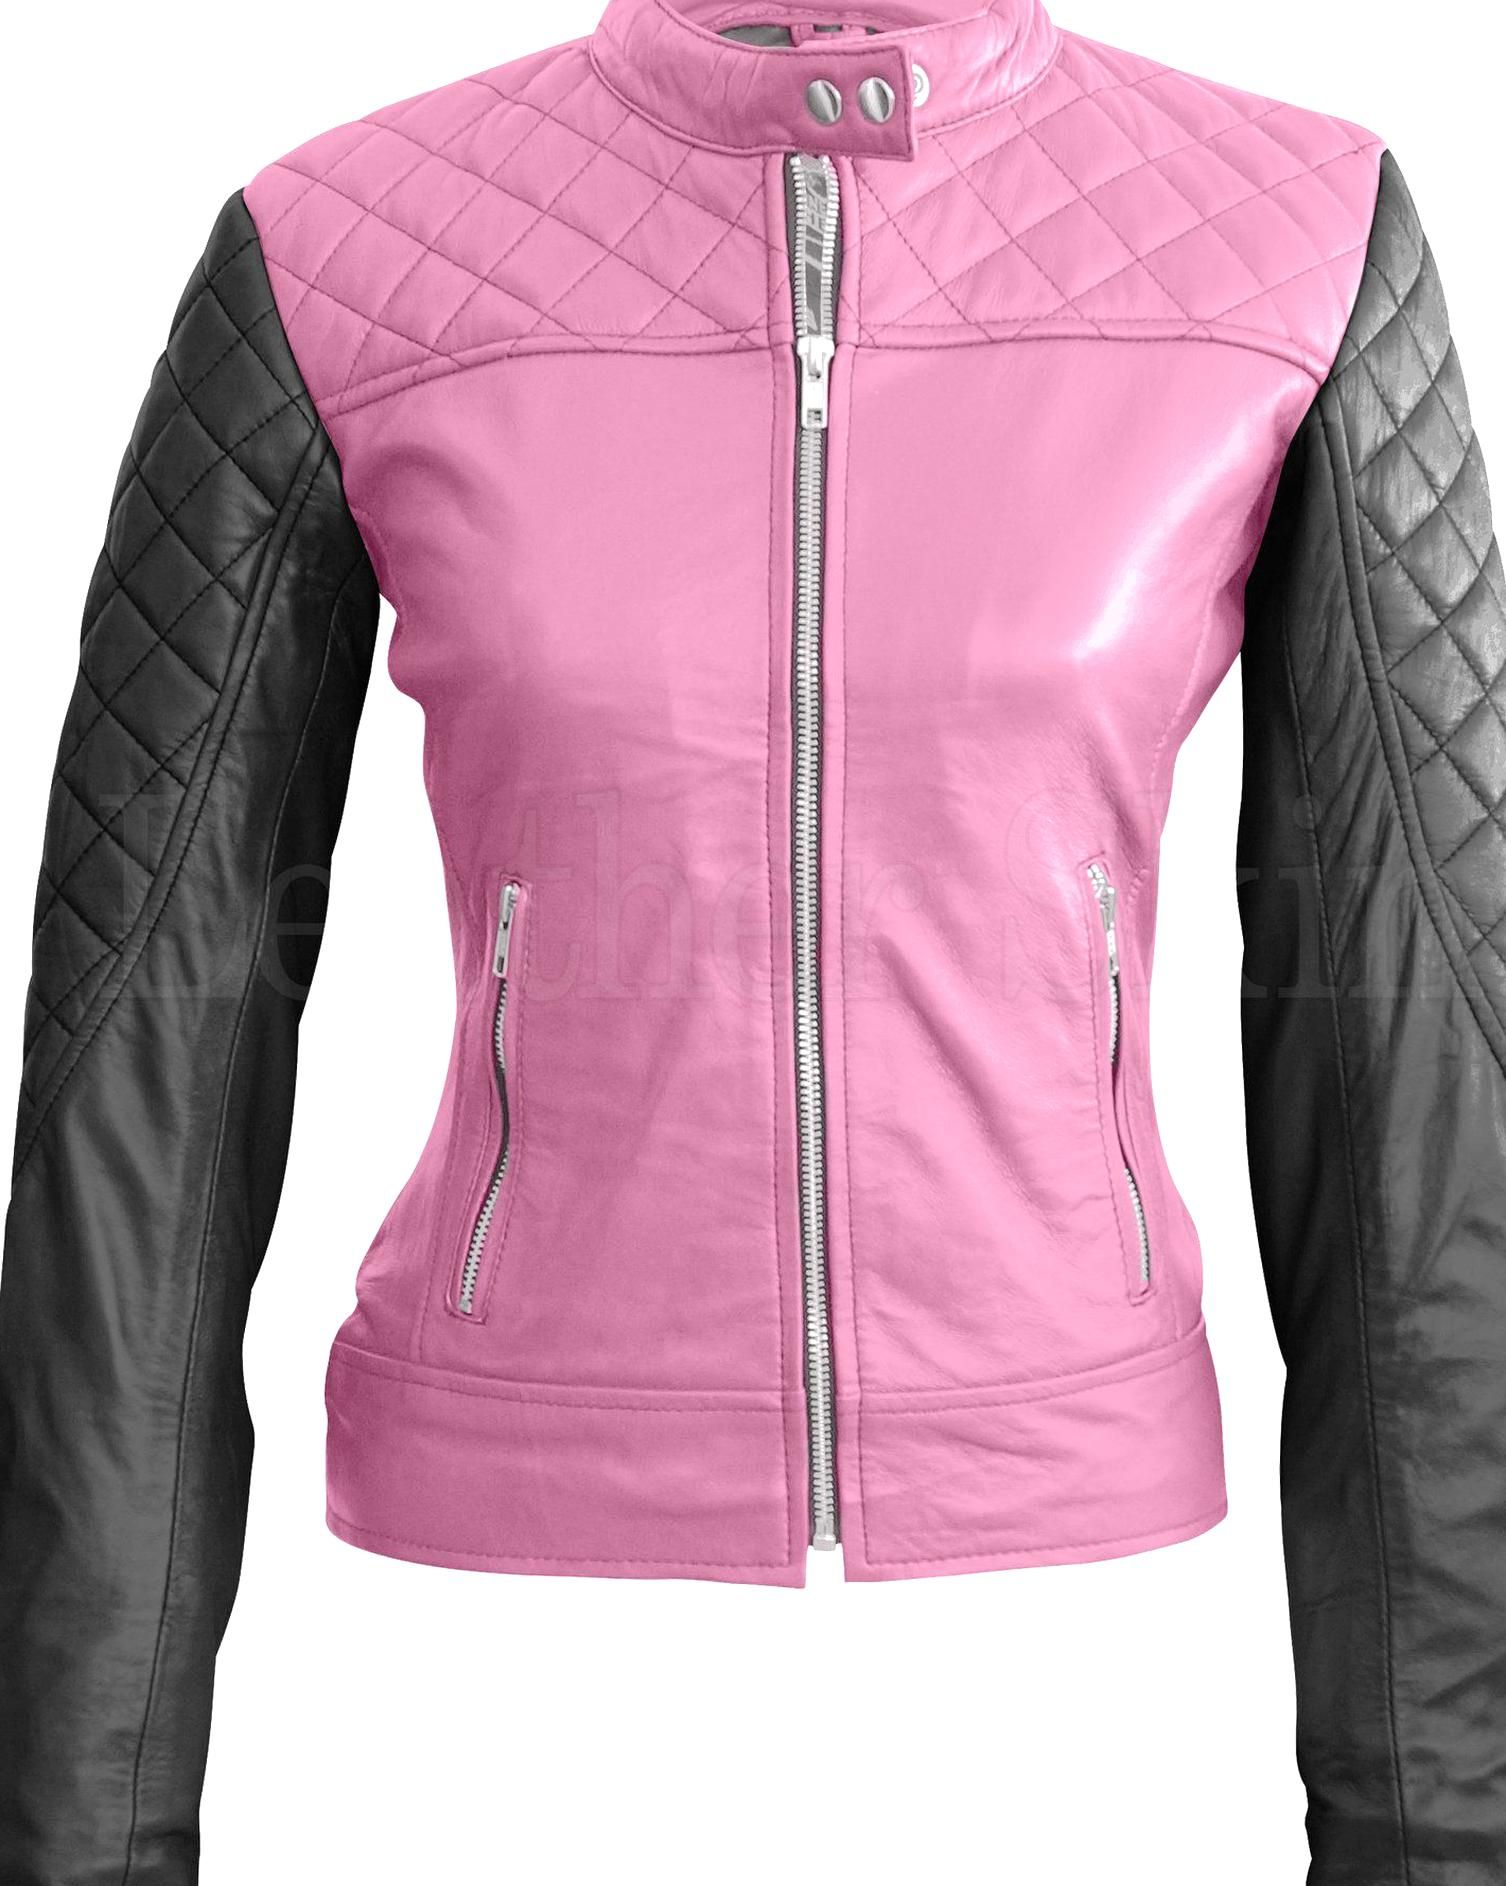 Leather Skin Women Pink With Black Sleeves Shoulder Quilted Genuine Leather Jacket Genuine Leather Jackets Leather Skin Athletic Jacket [ 1886 x 1506 Pixel ]